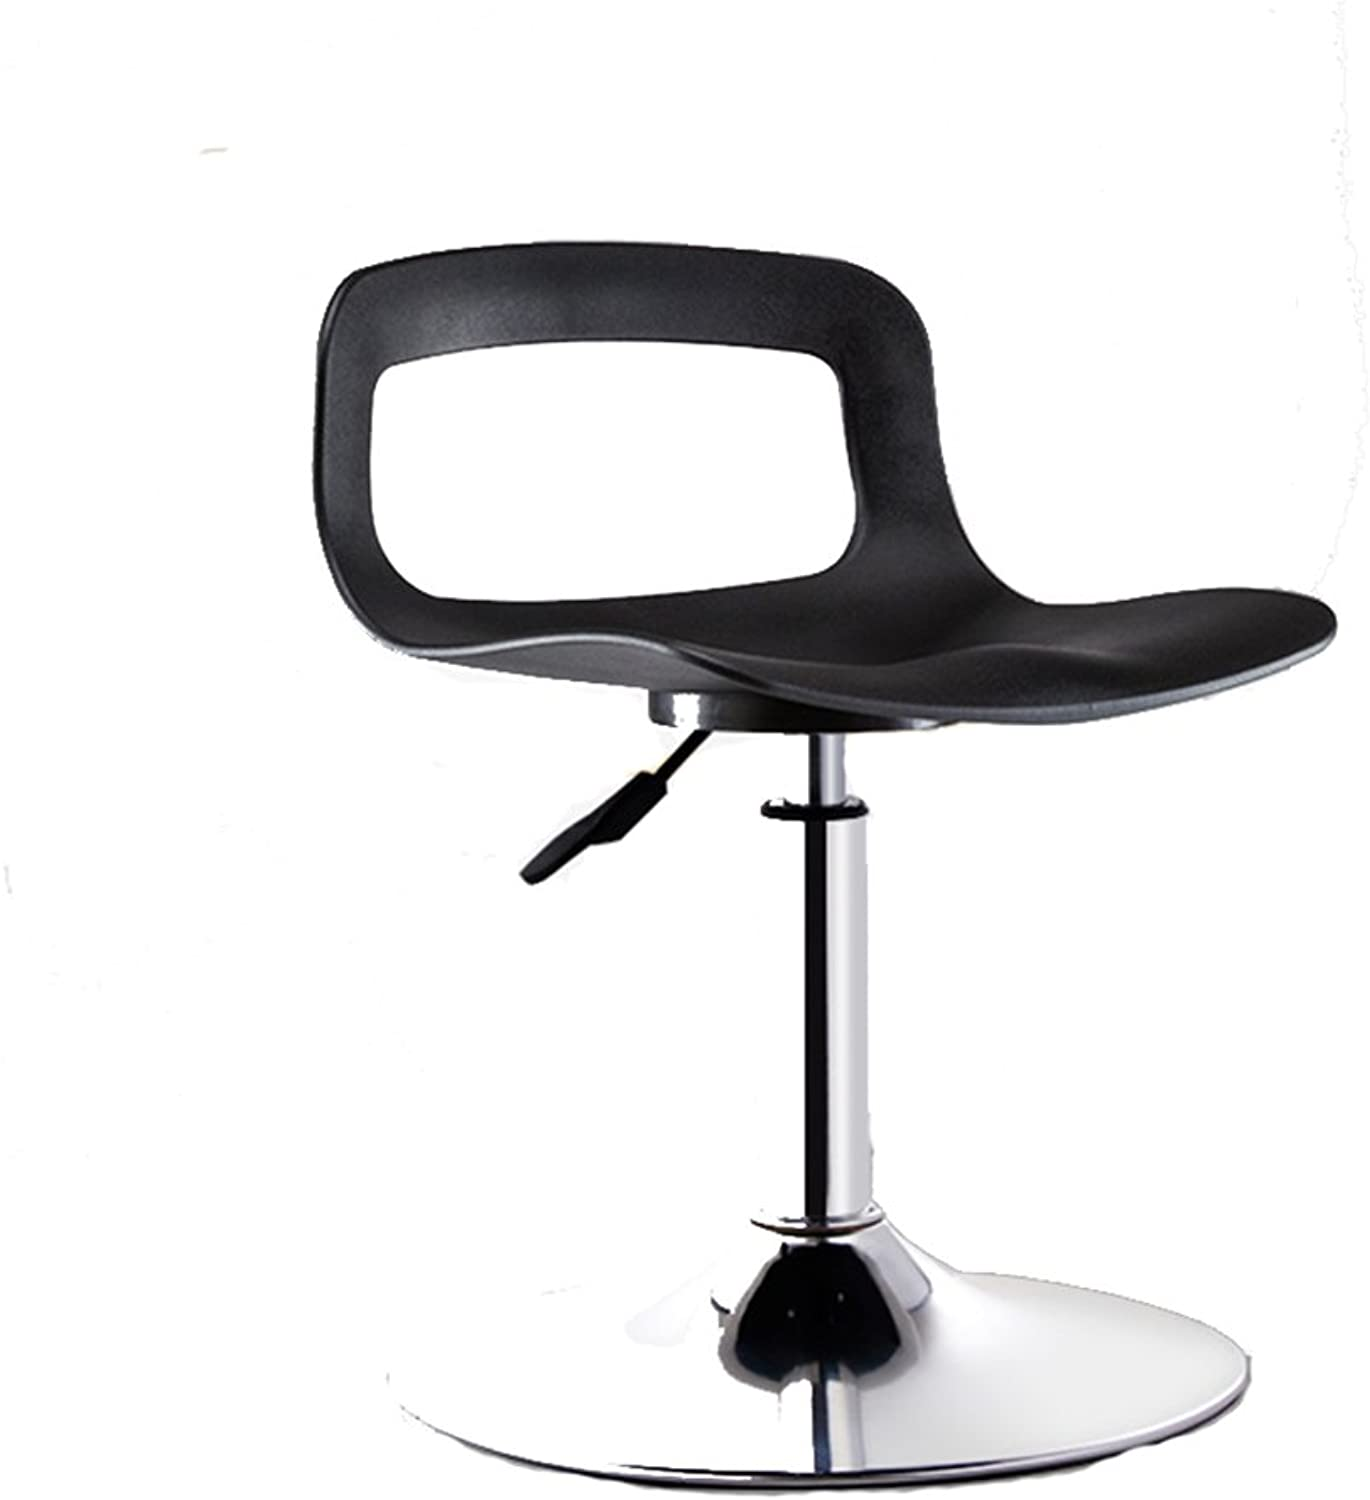 LHA Barstools Bar Stool 360° Swivel Chair Height Adjustable - Black, White Bar Furniture (color   Black)